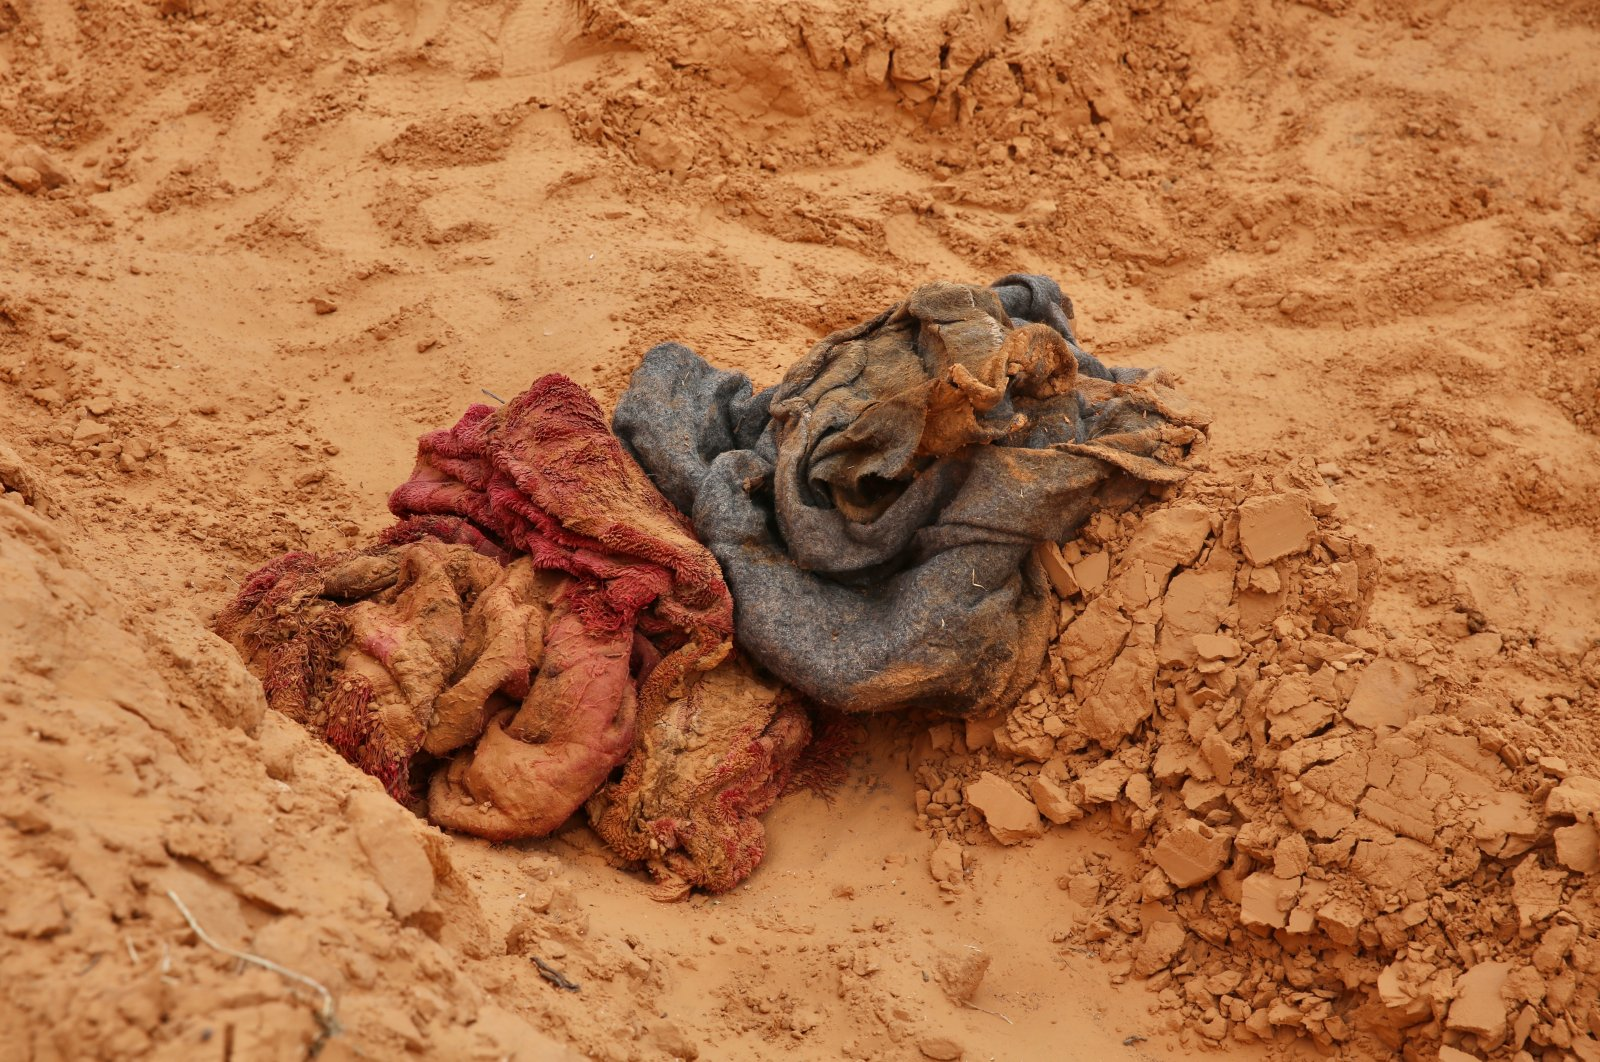 Scraps of clothing were scattered around the site near mass graves covered with fresh soil in Libya's Tarhuna province, June 12, 2020. (AA Photo)